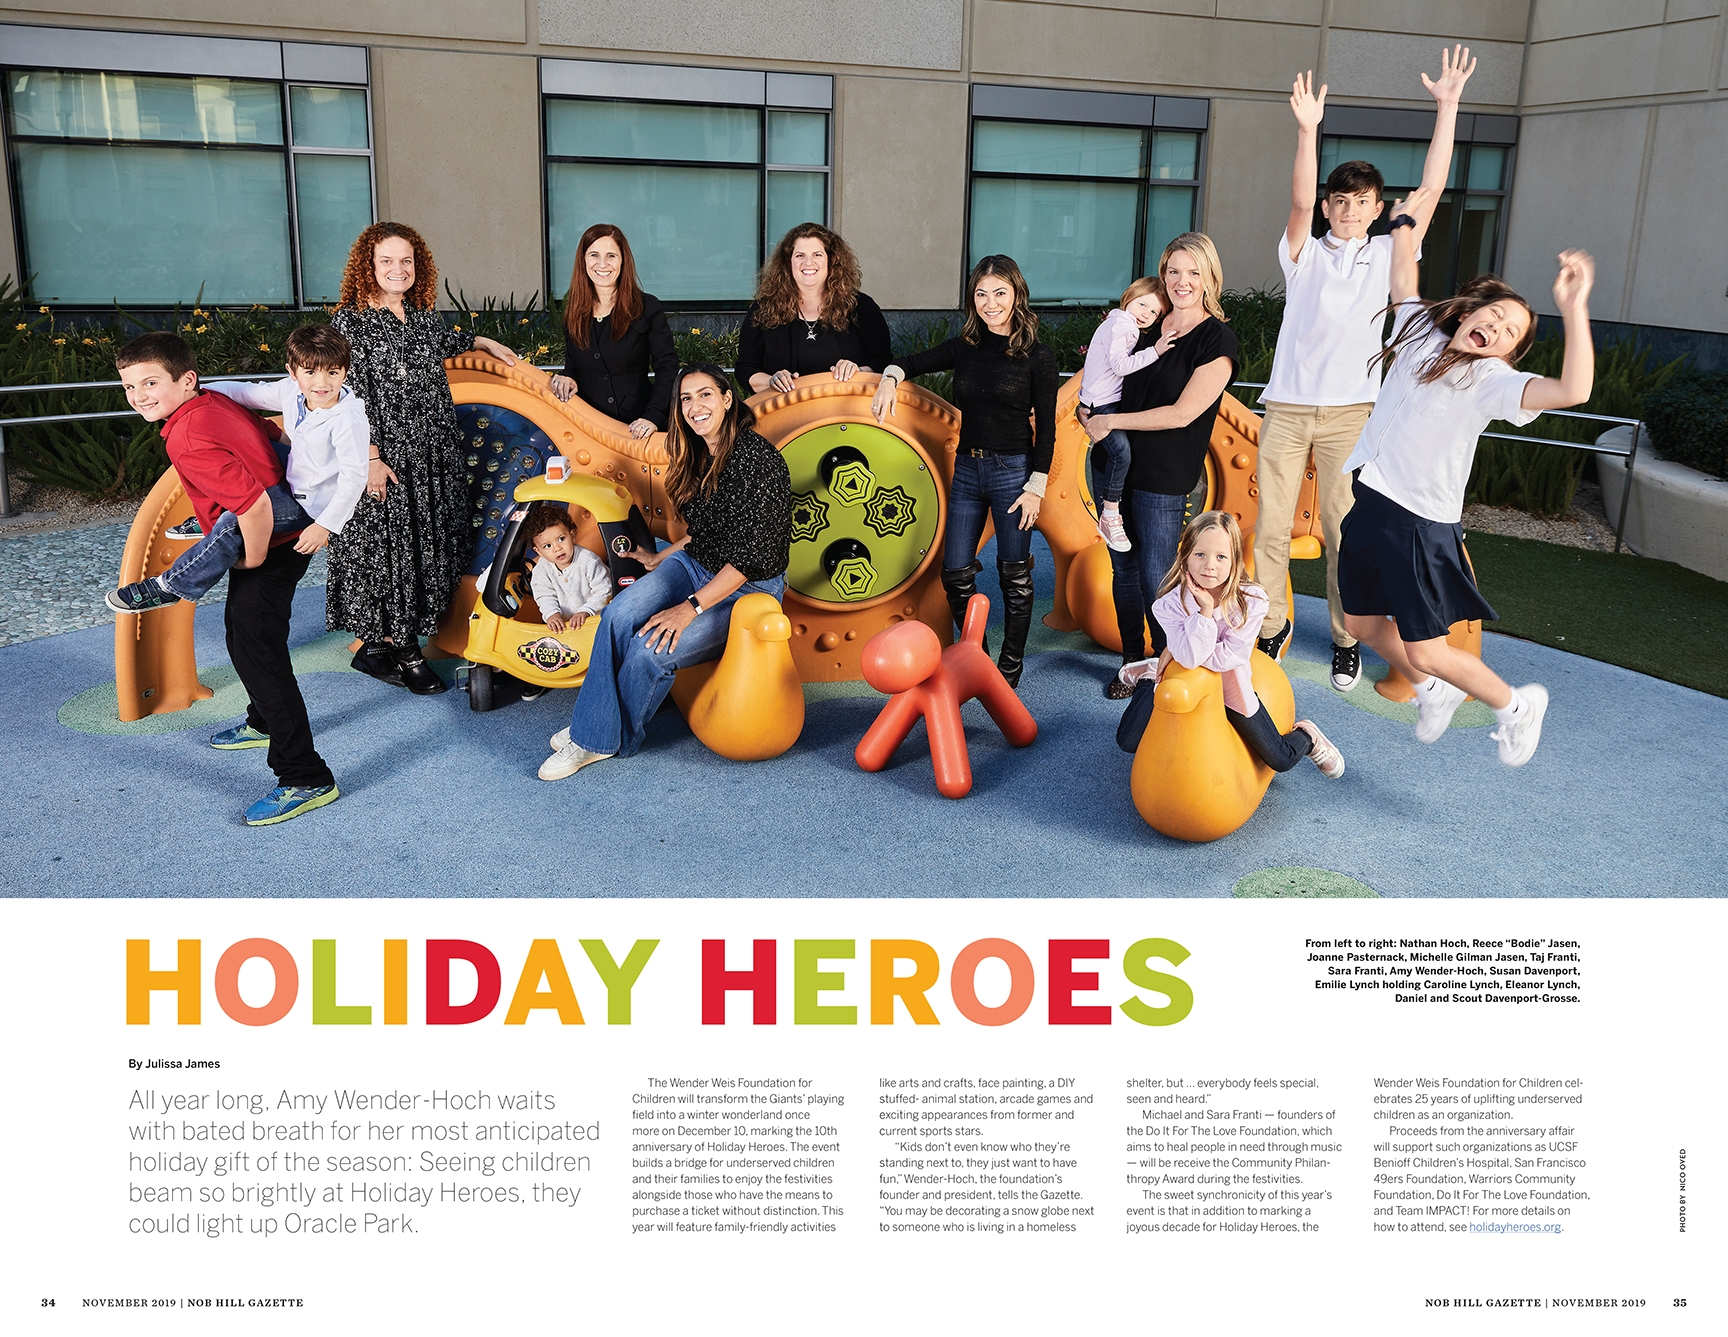 holidayheroes_spread_small